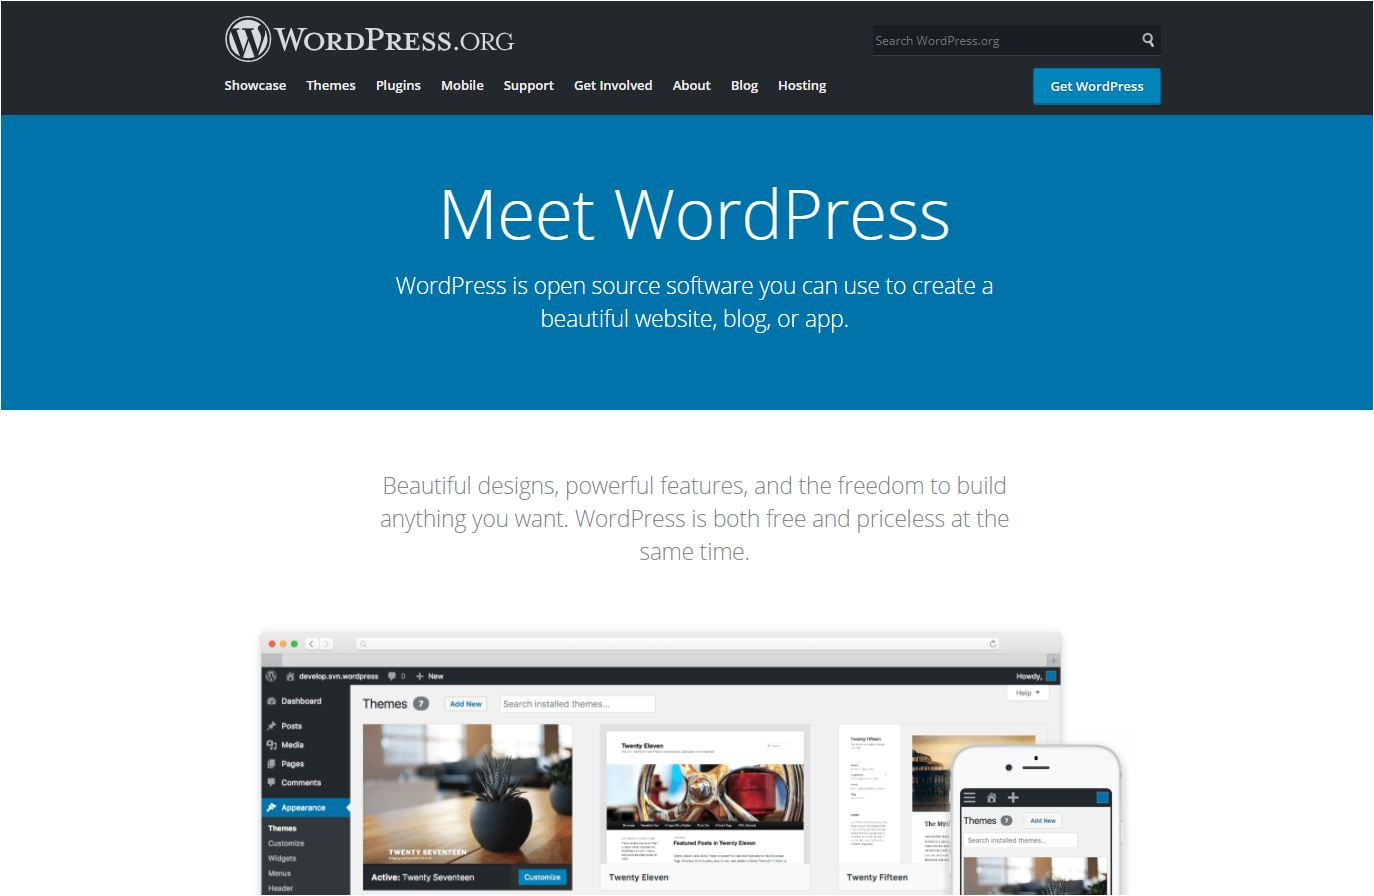 self-hosted WordPress home page.